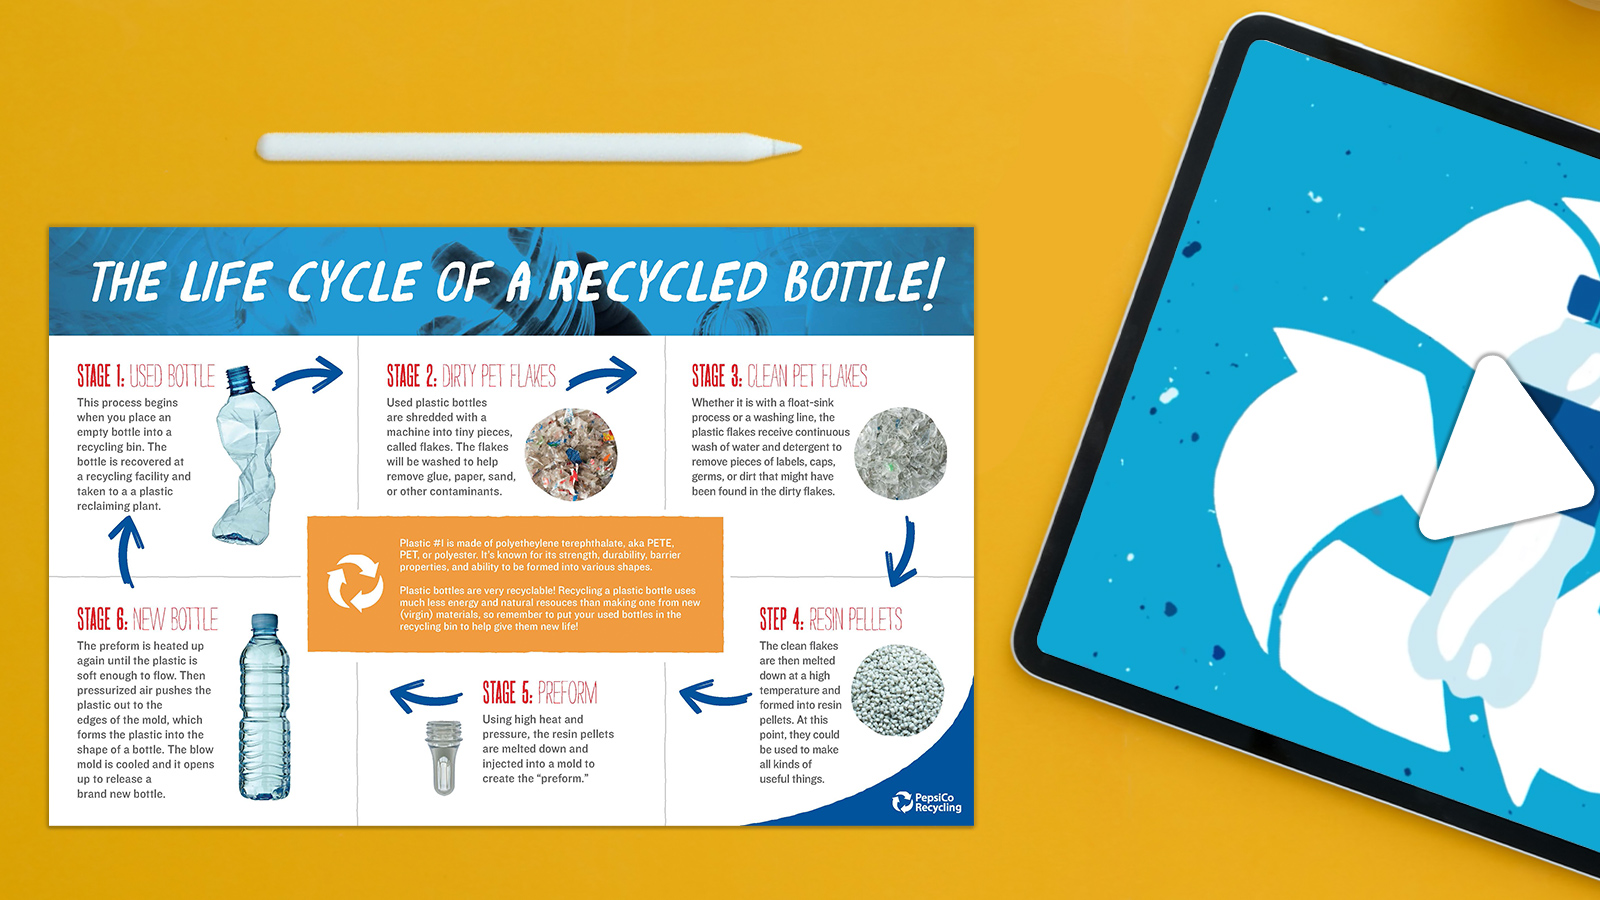 What Is the Life Cycle of a Recycled Plastic Bottle?